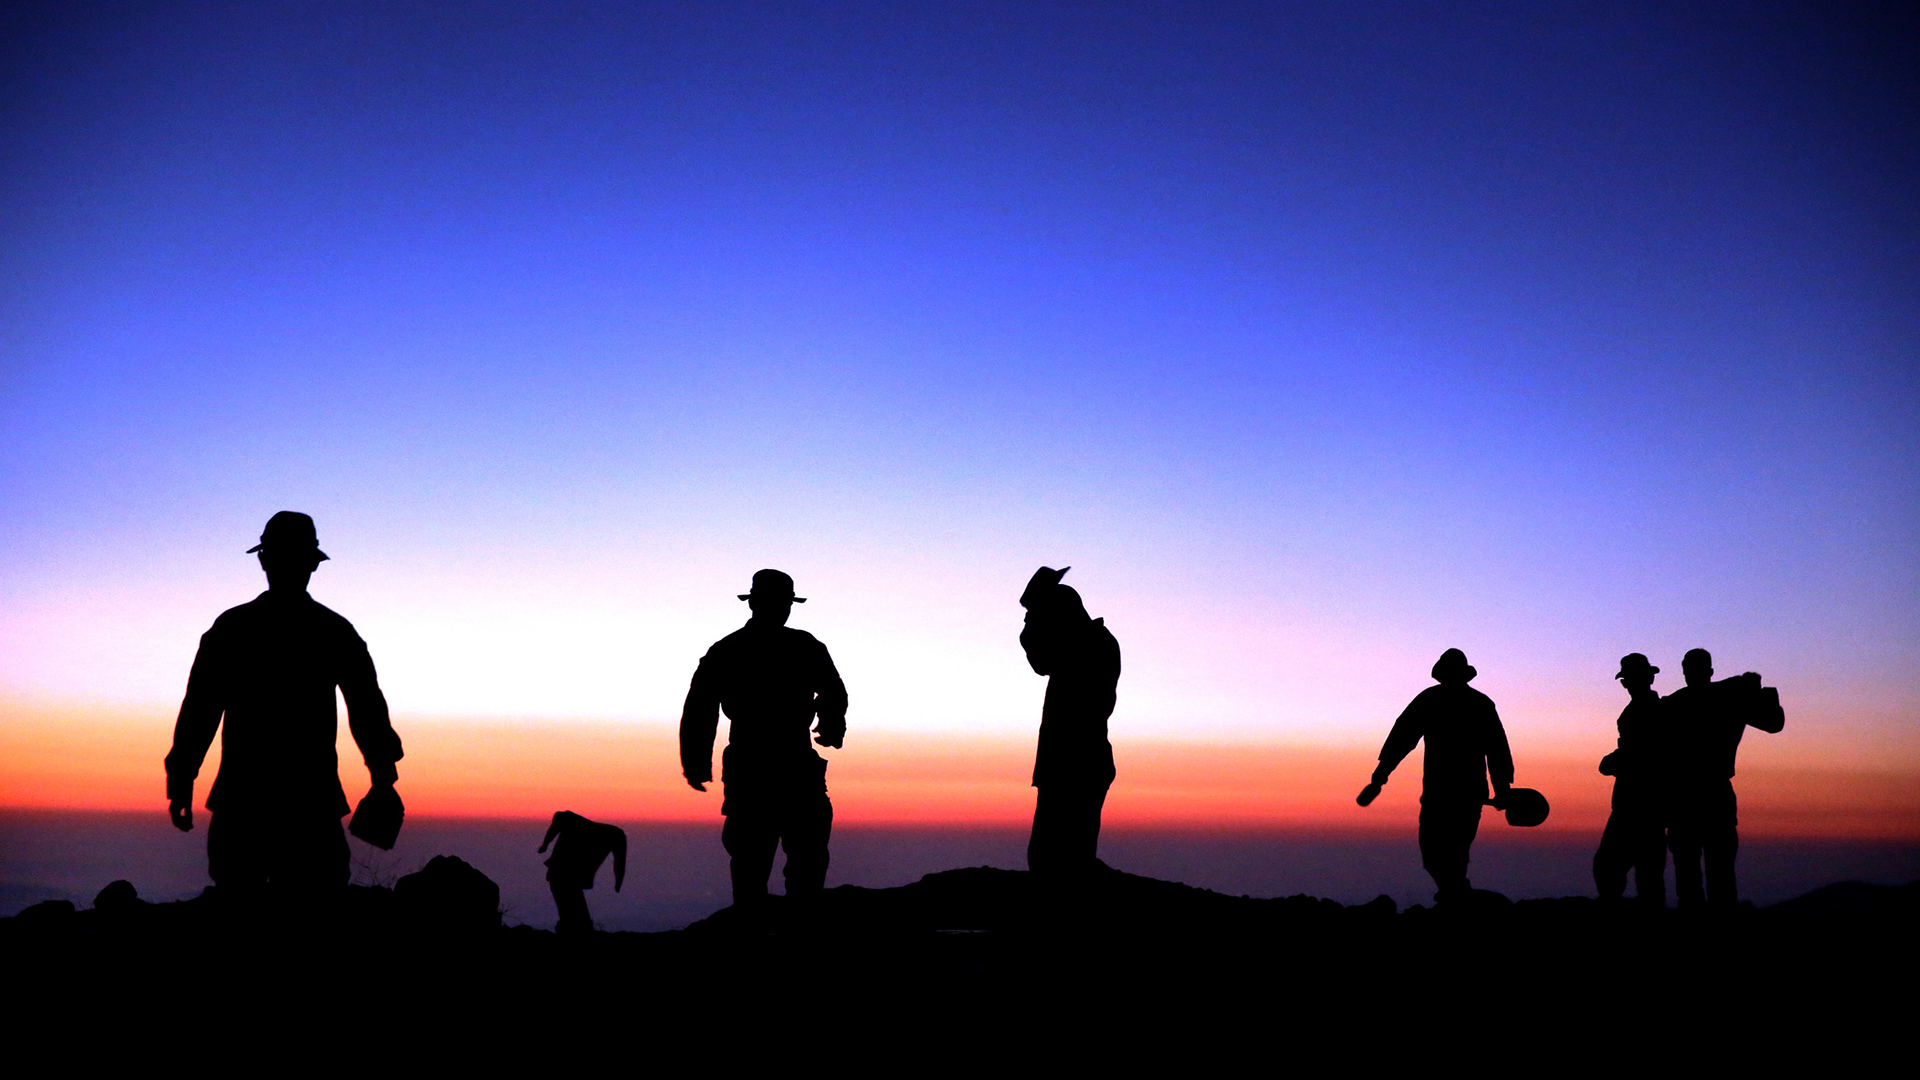 Soldiers Silhouette Sunset Military Wallpaper 1920x1080 136951